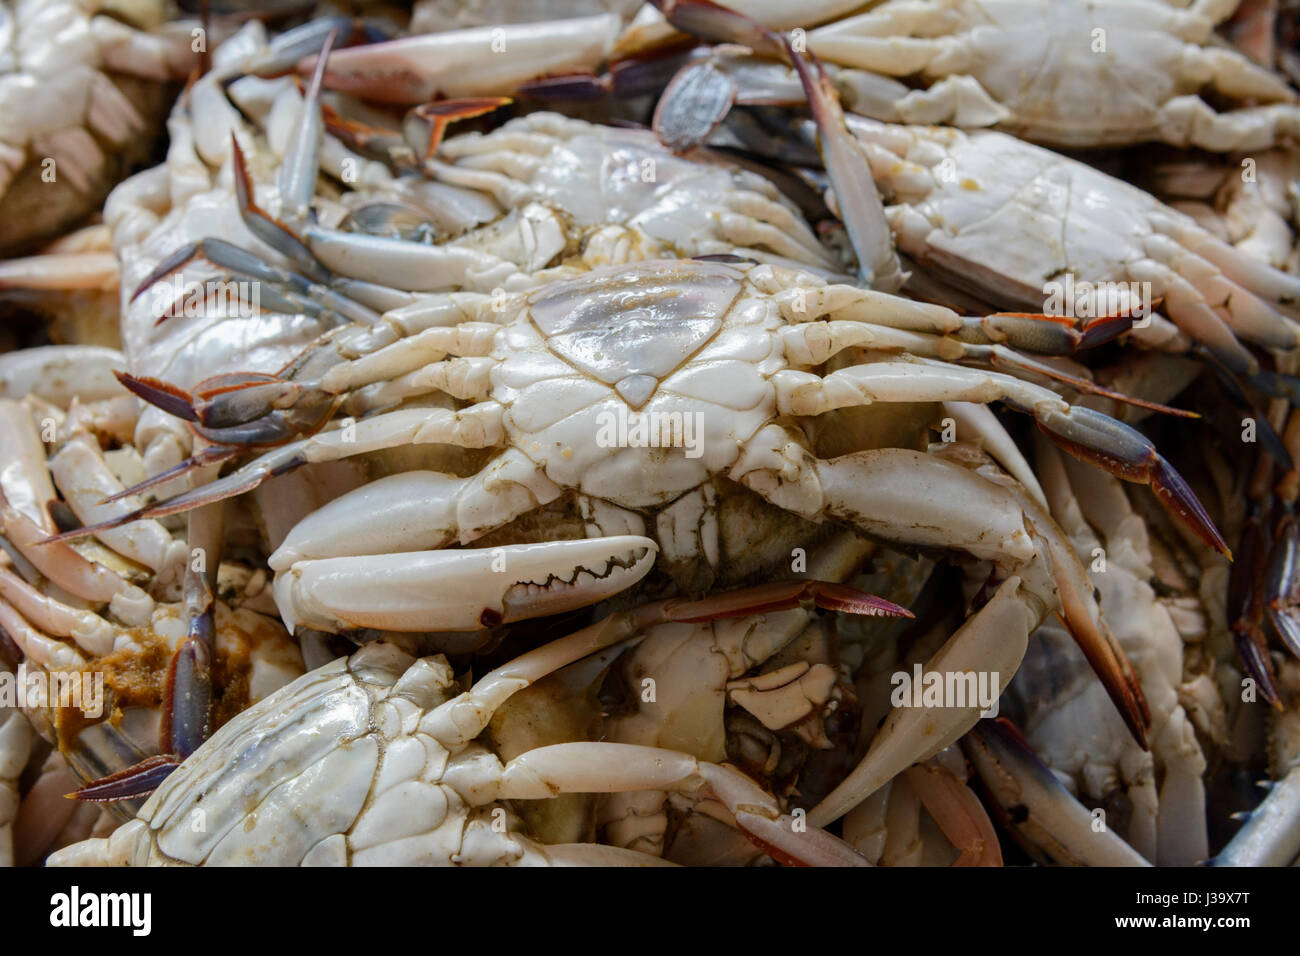 A pile of freshly caught crabs on sale at the fish market in Thalassery (Tellicherry), Kannur district (Cannanore), - Stock Image